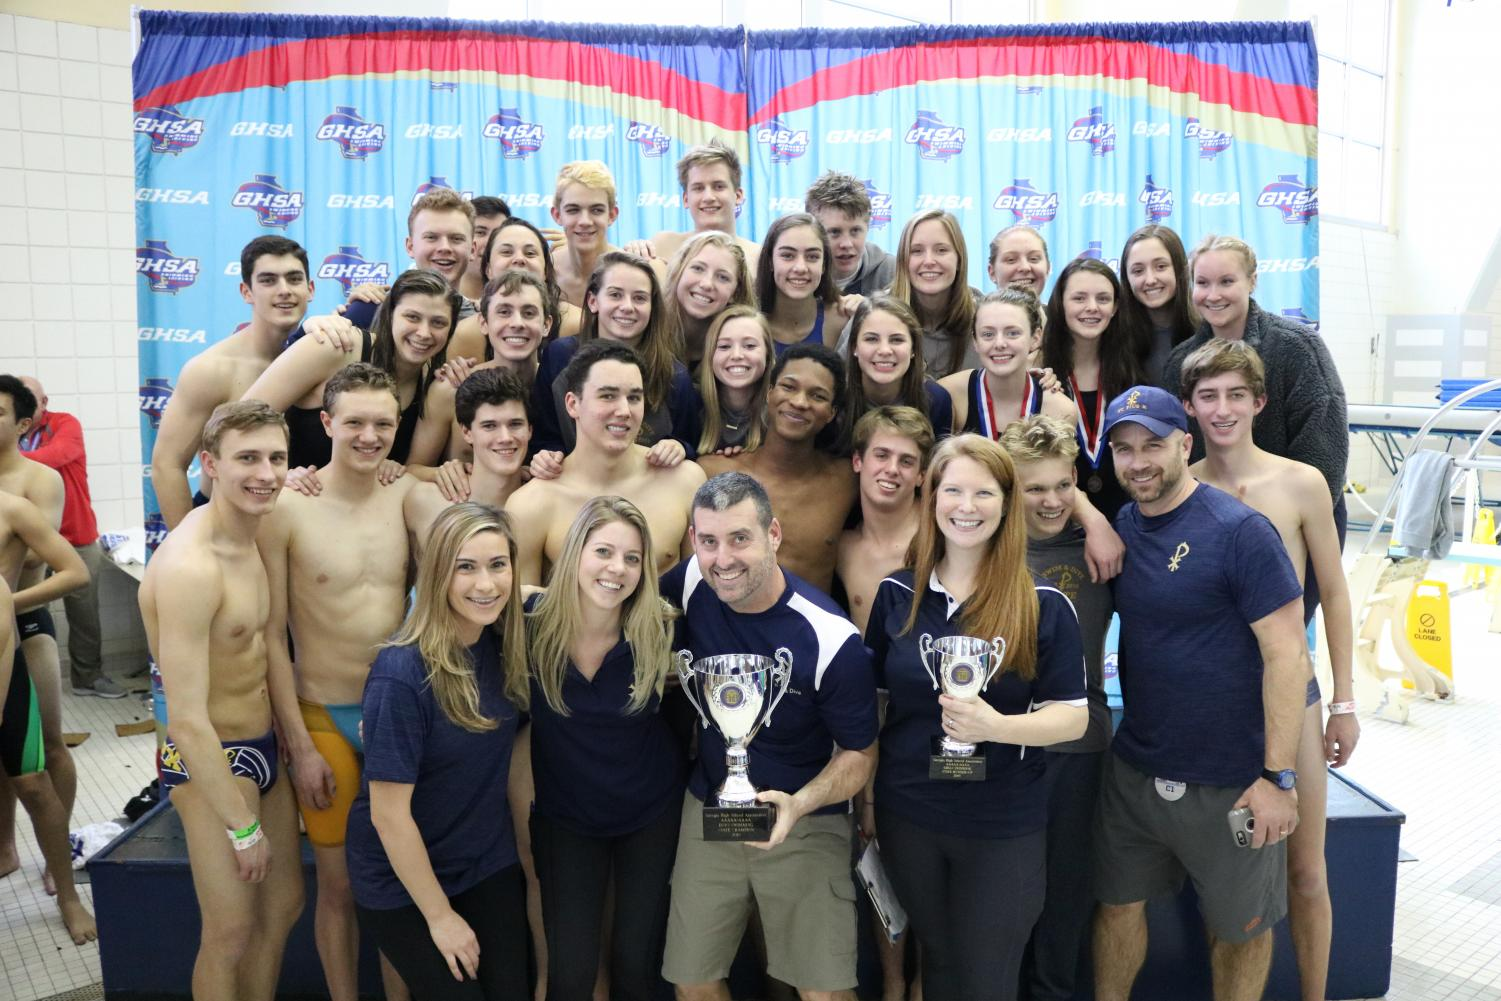 The boys' and girls' teams show off their 1st and 2nd place trophies at the state meet on Saturday, February 9.